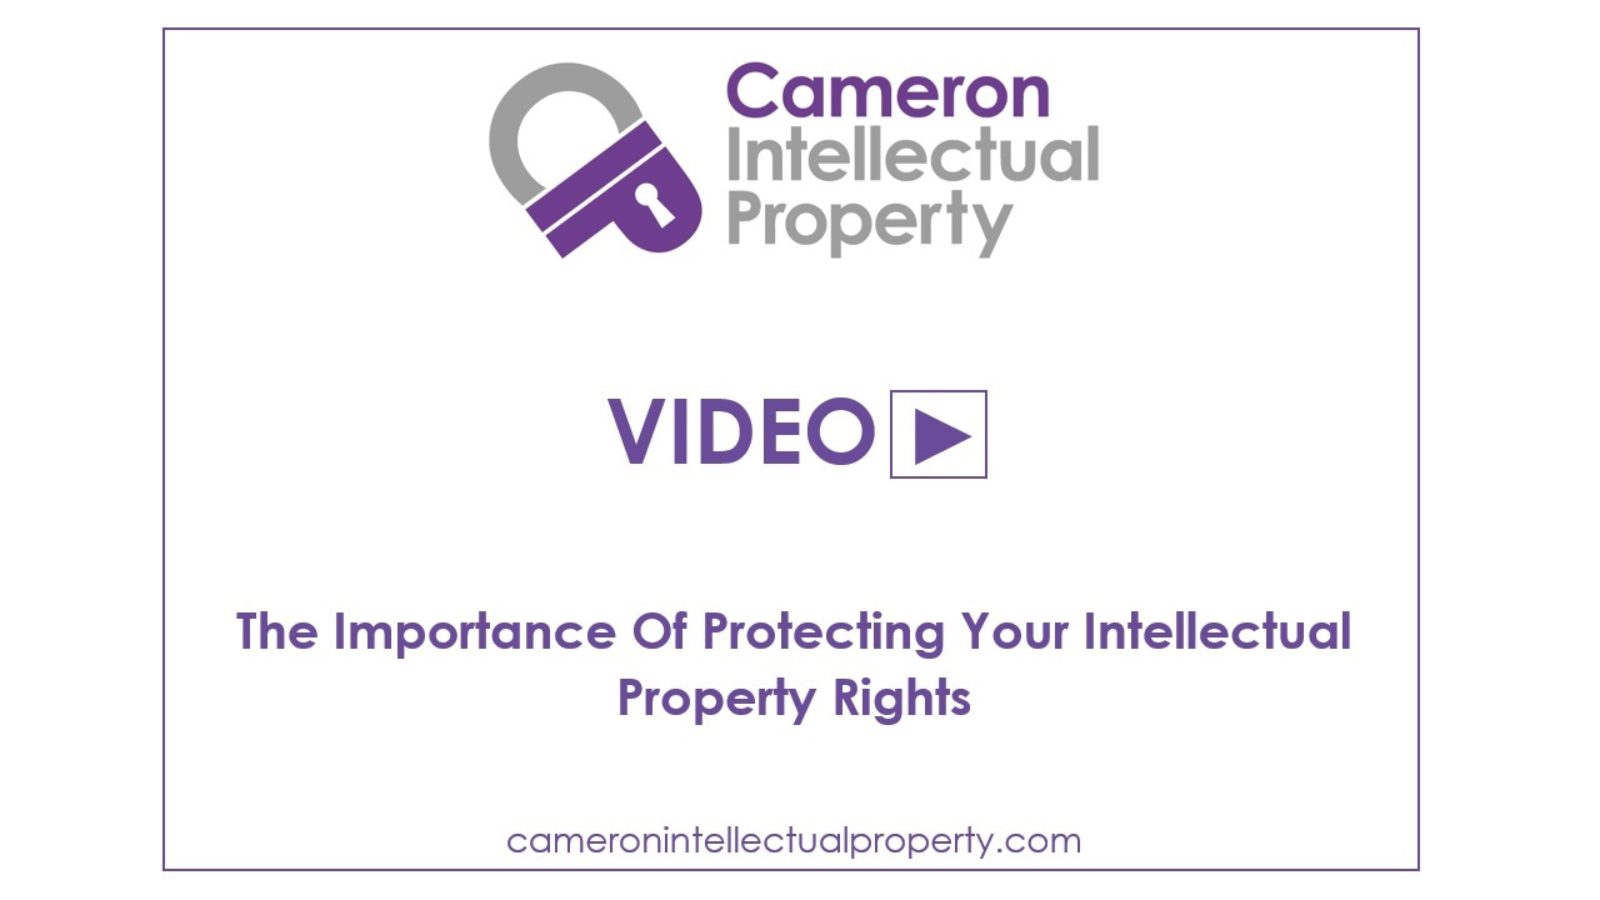 The importance of protecting your intellectual property rights